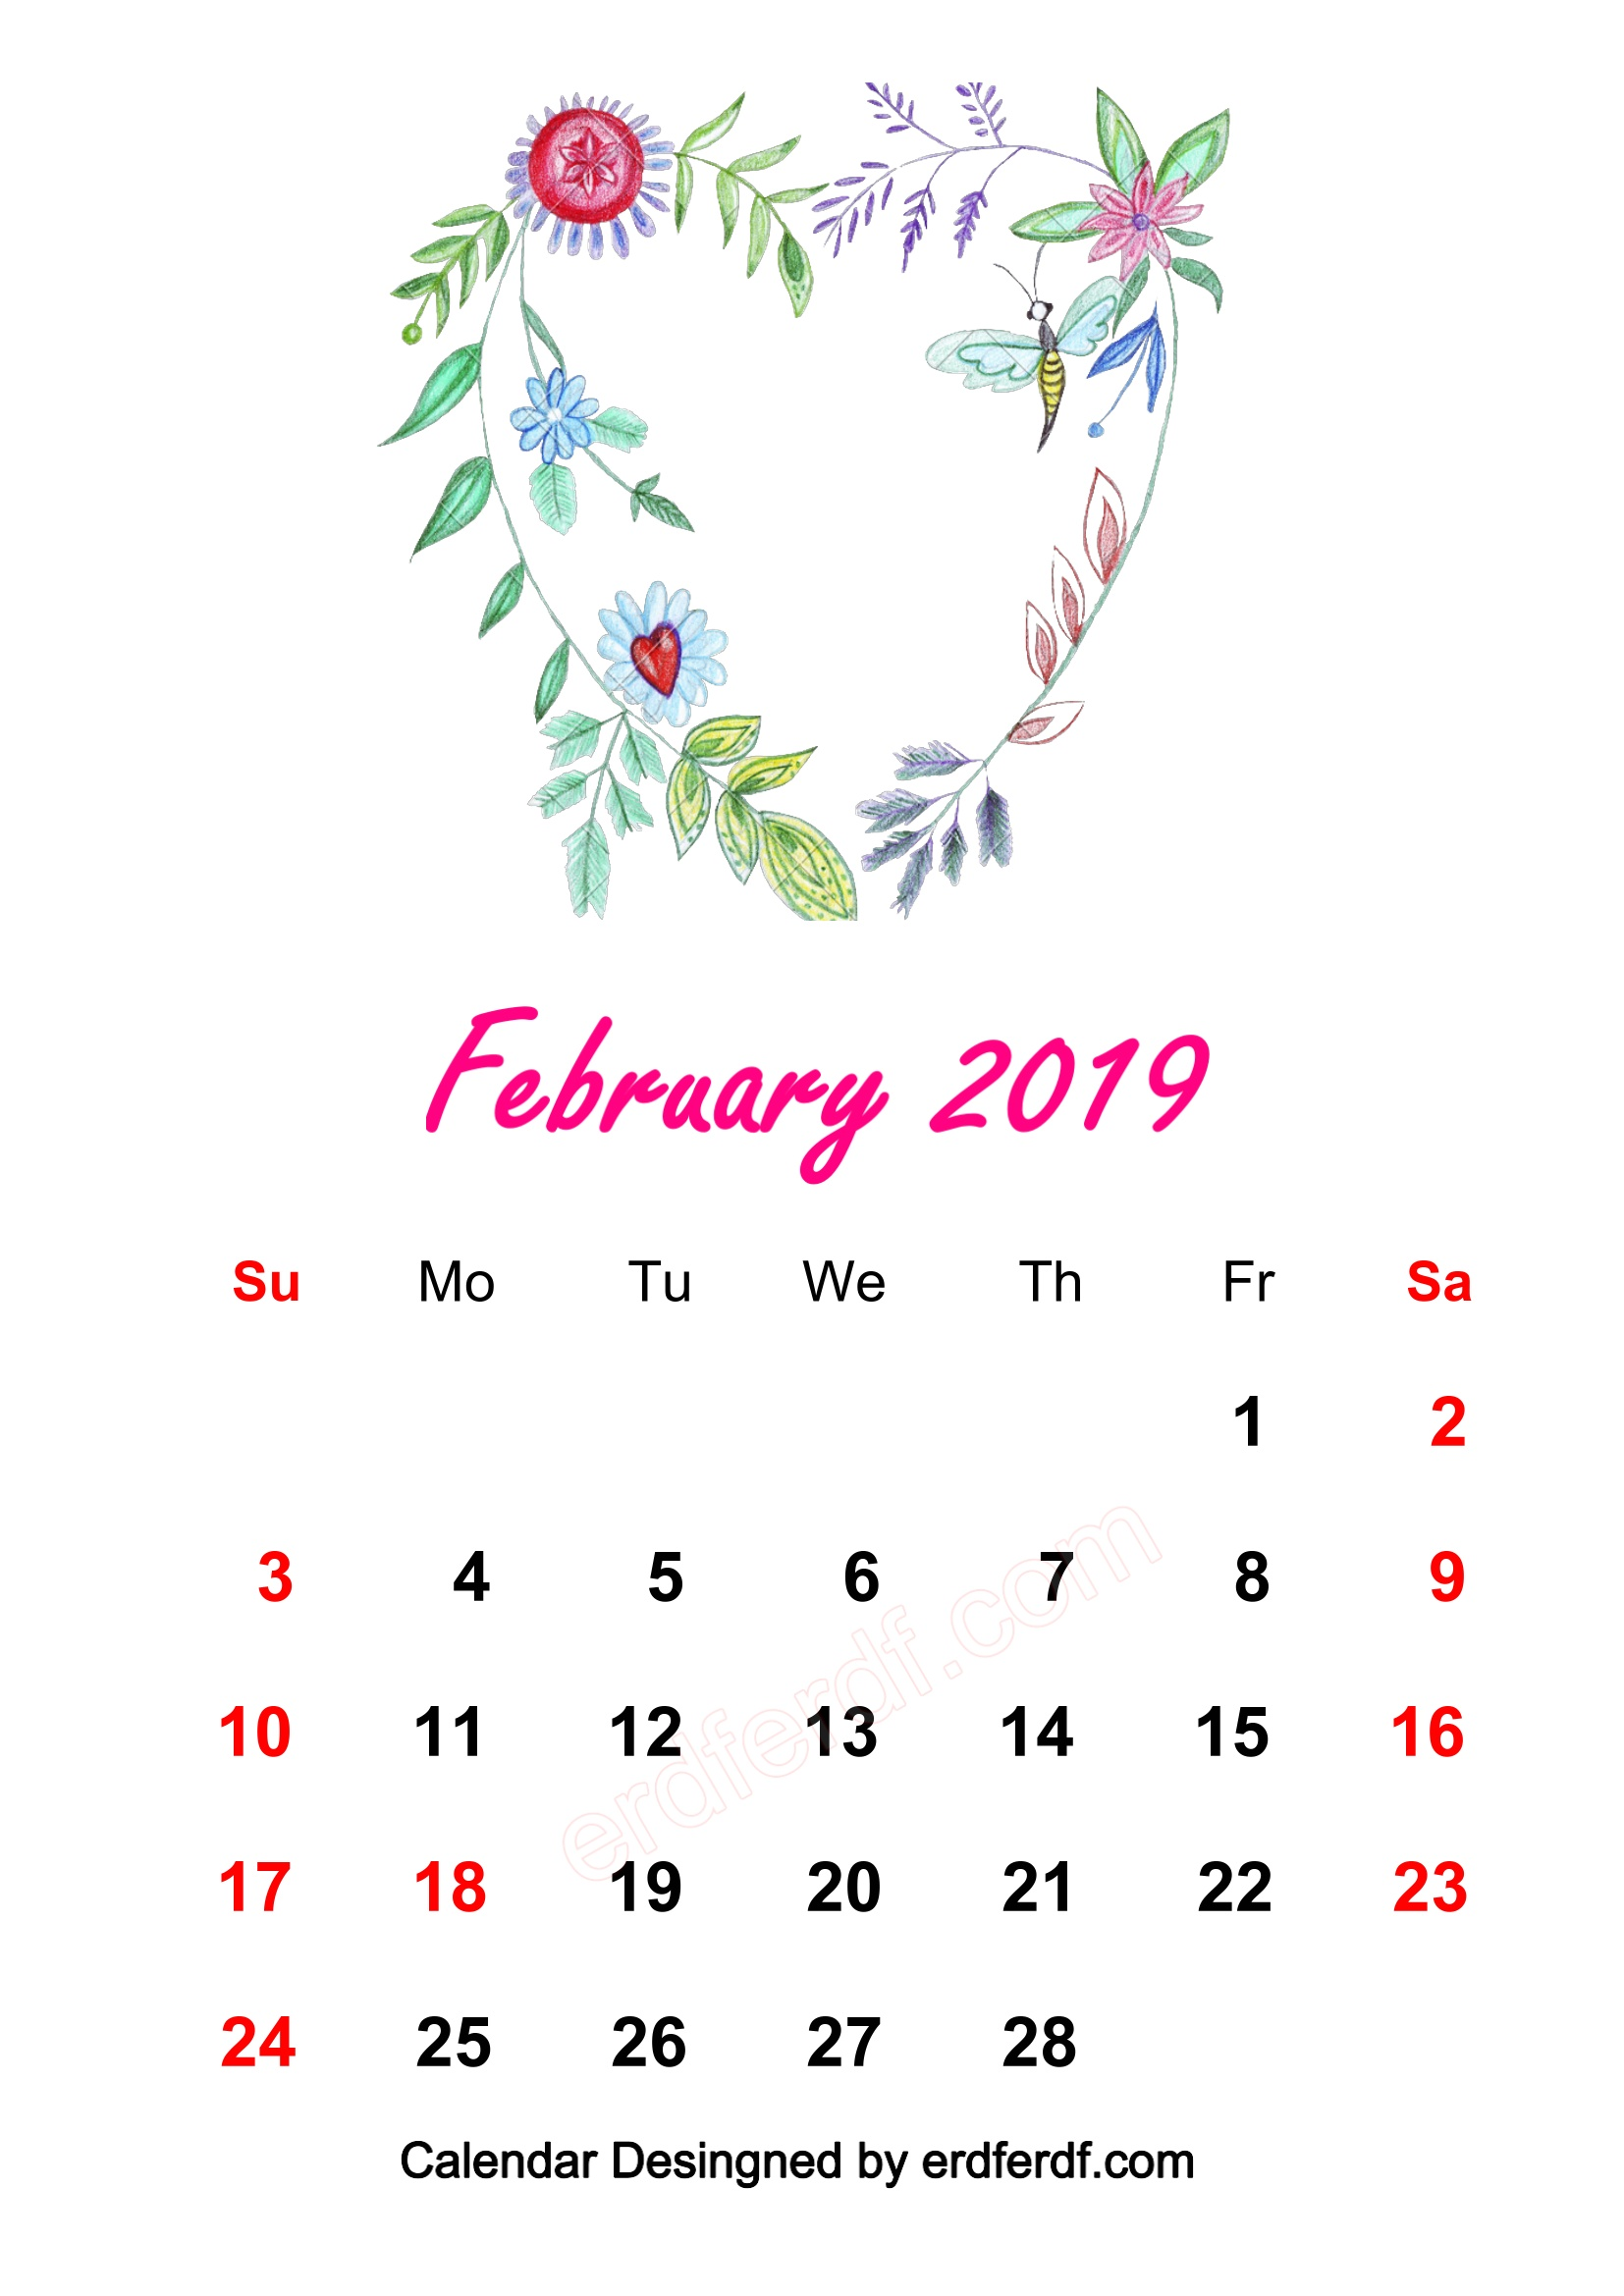 8 Design February 2019 HD Calendar Wallpapers